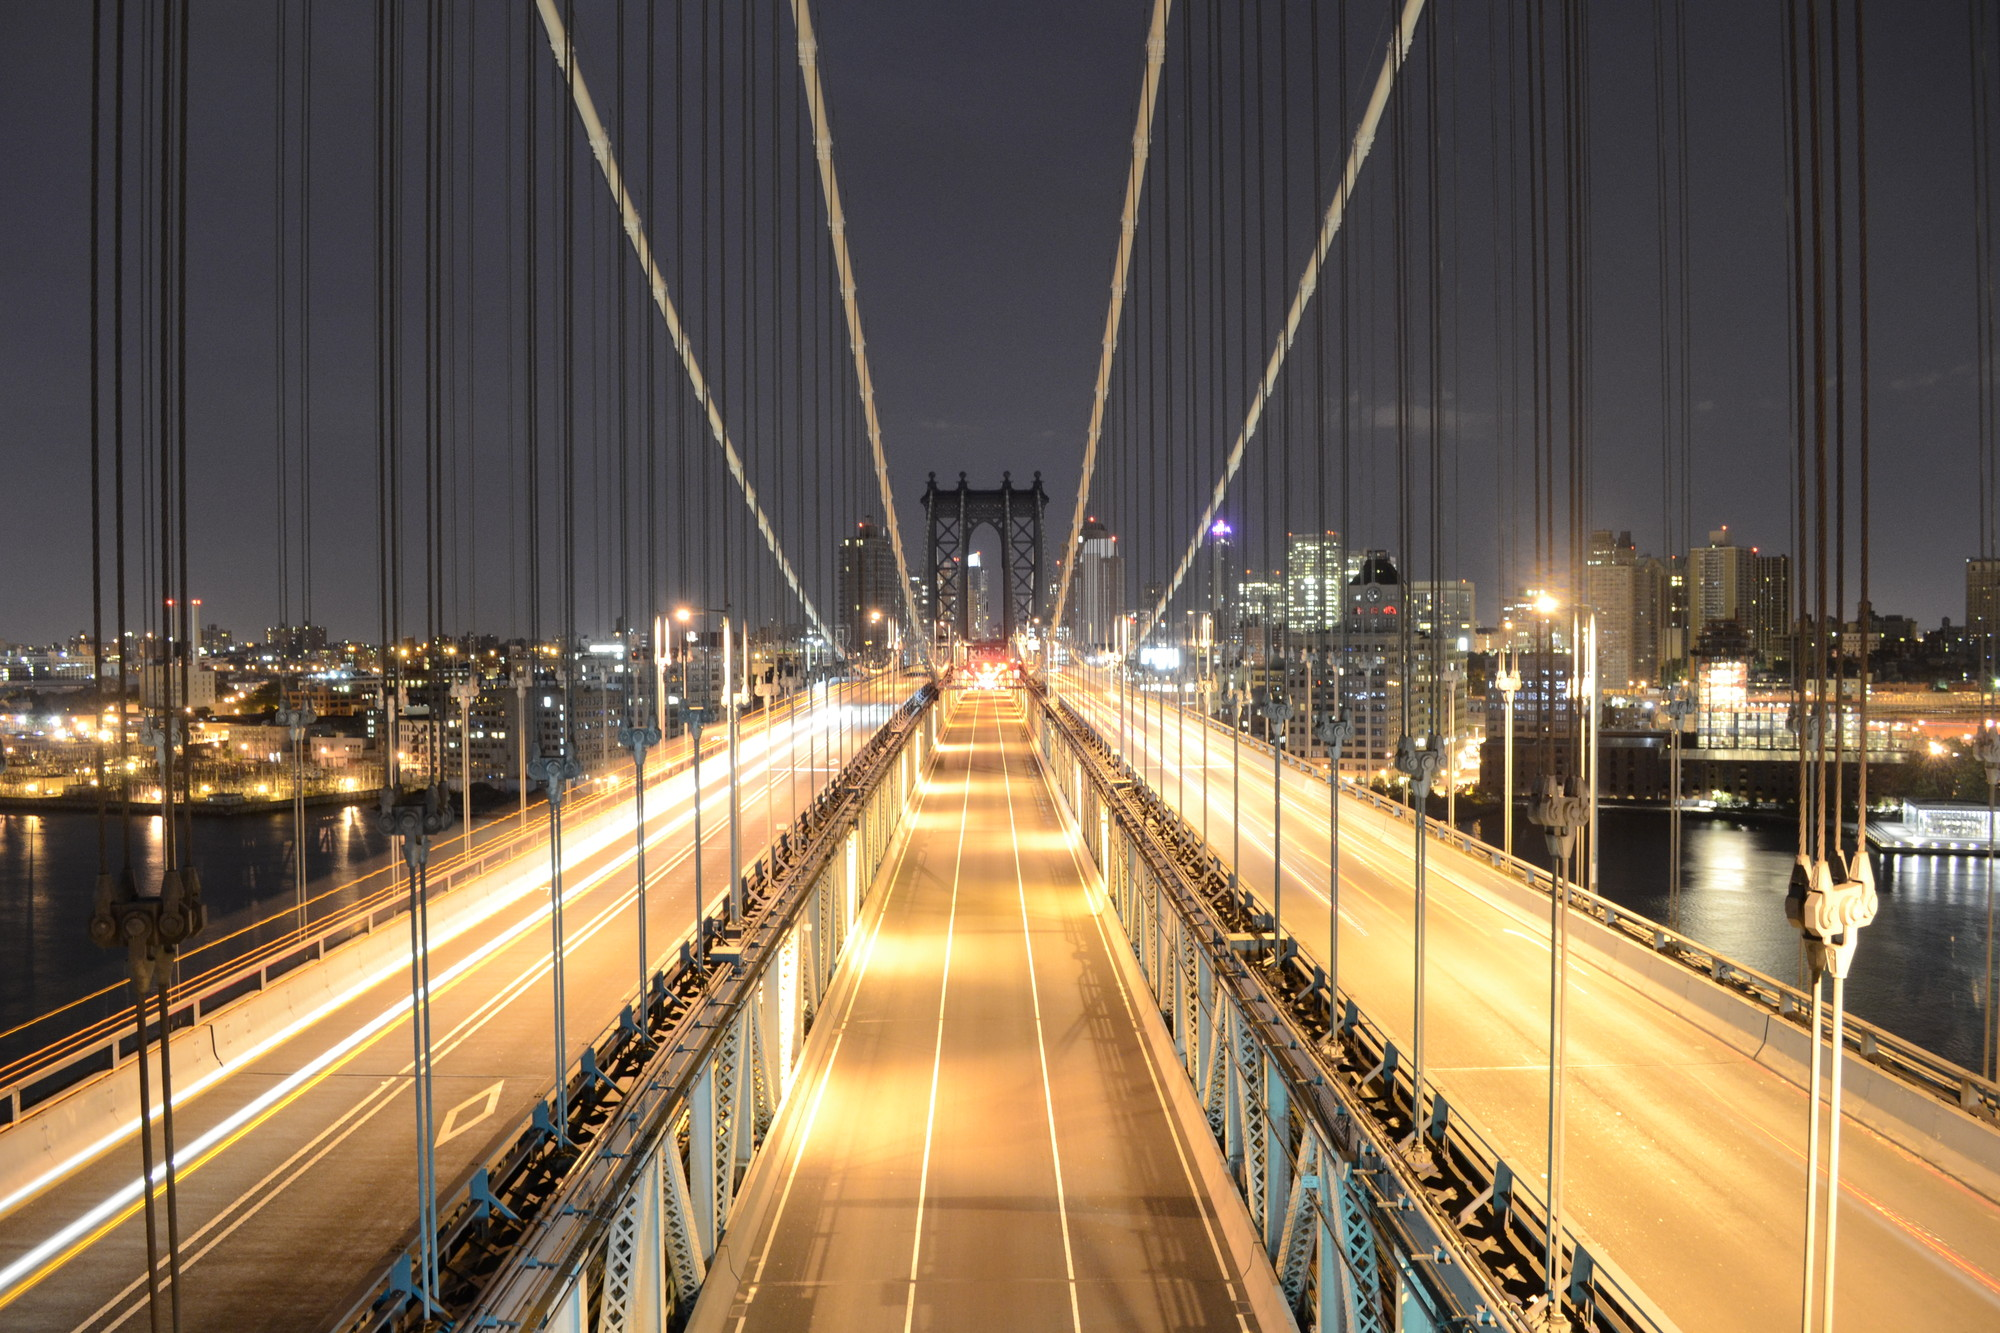 Manhattan Bridge. Image © Demid Lebedev